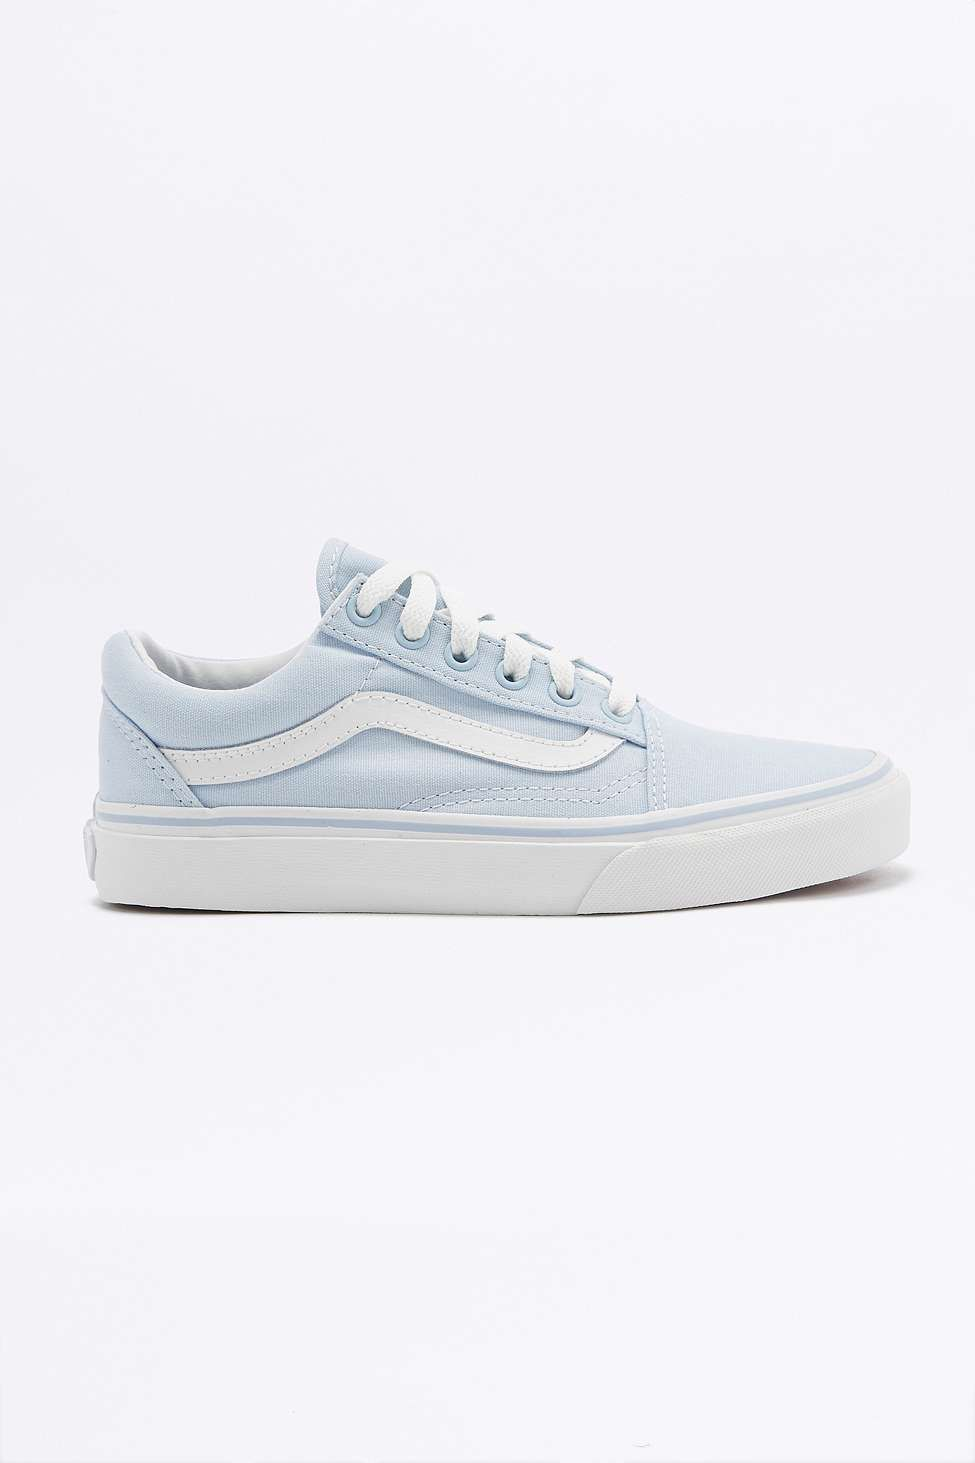 Vans Old Skool Baby Blue Trainers  61d593c25ee